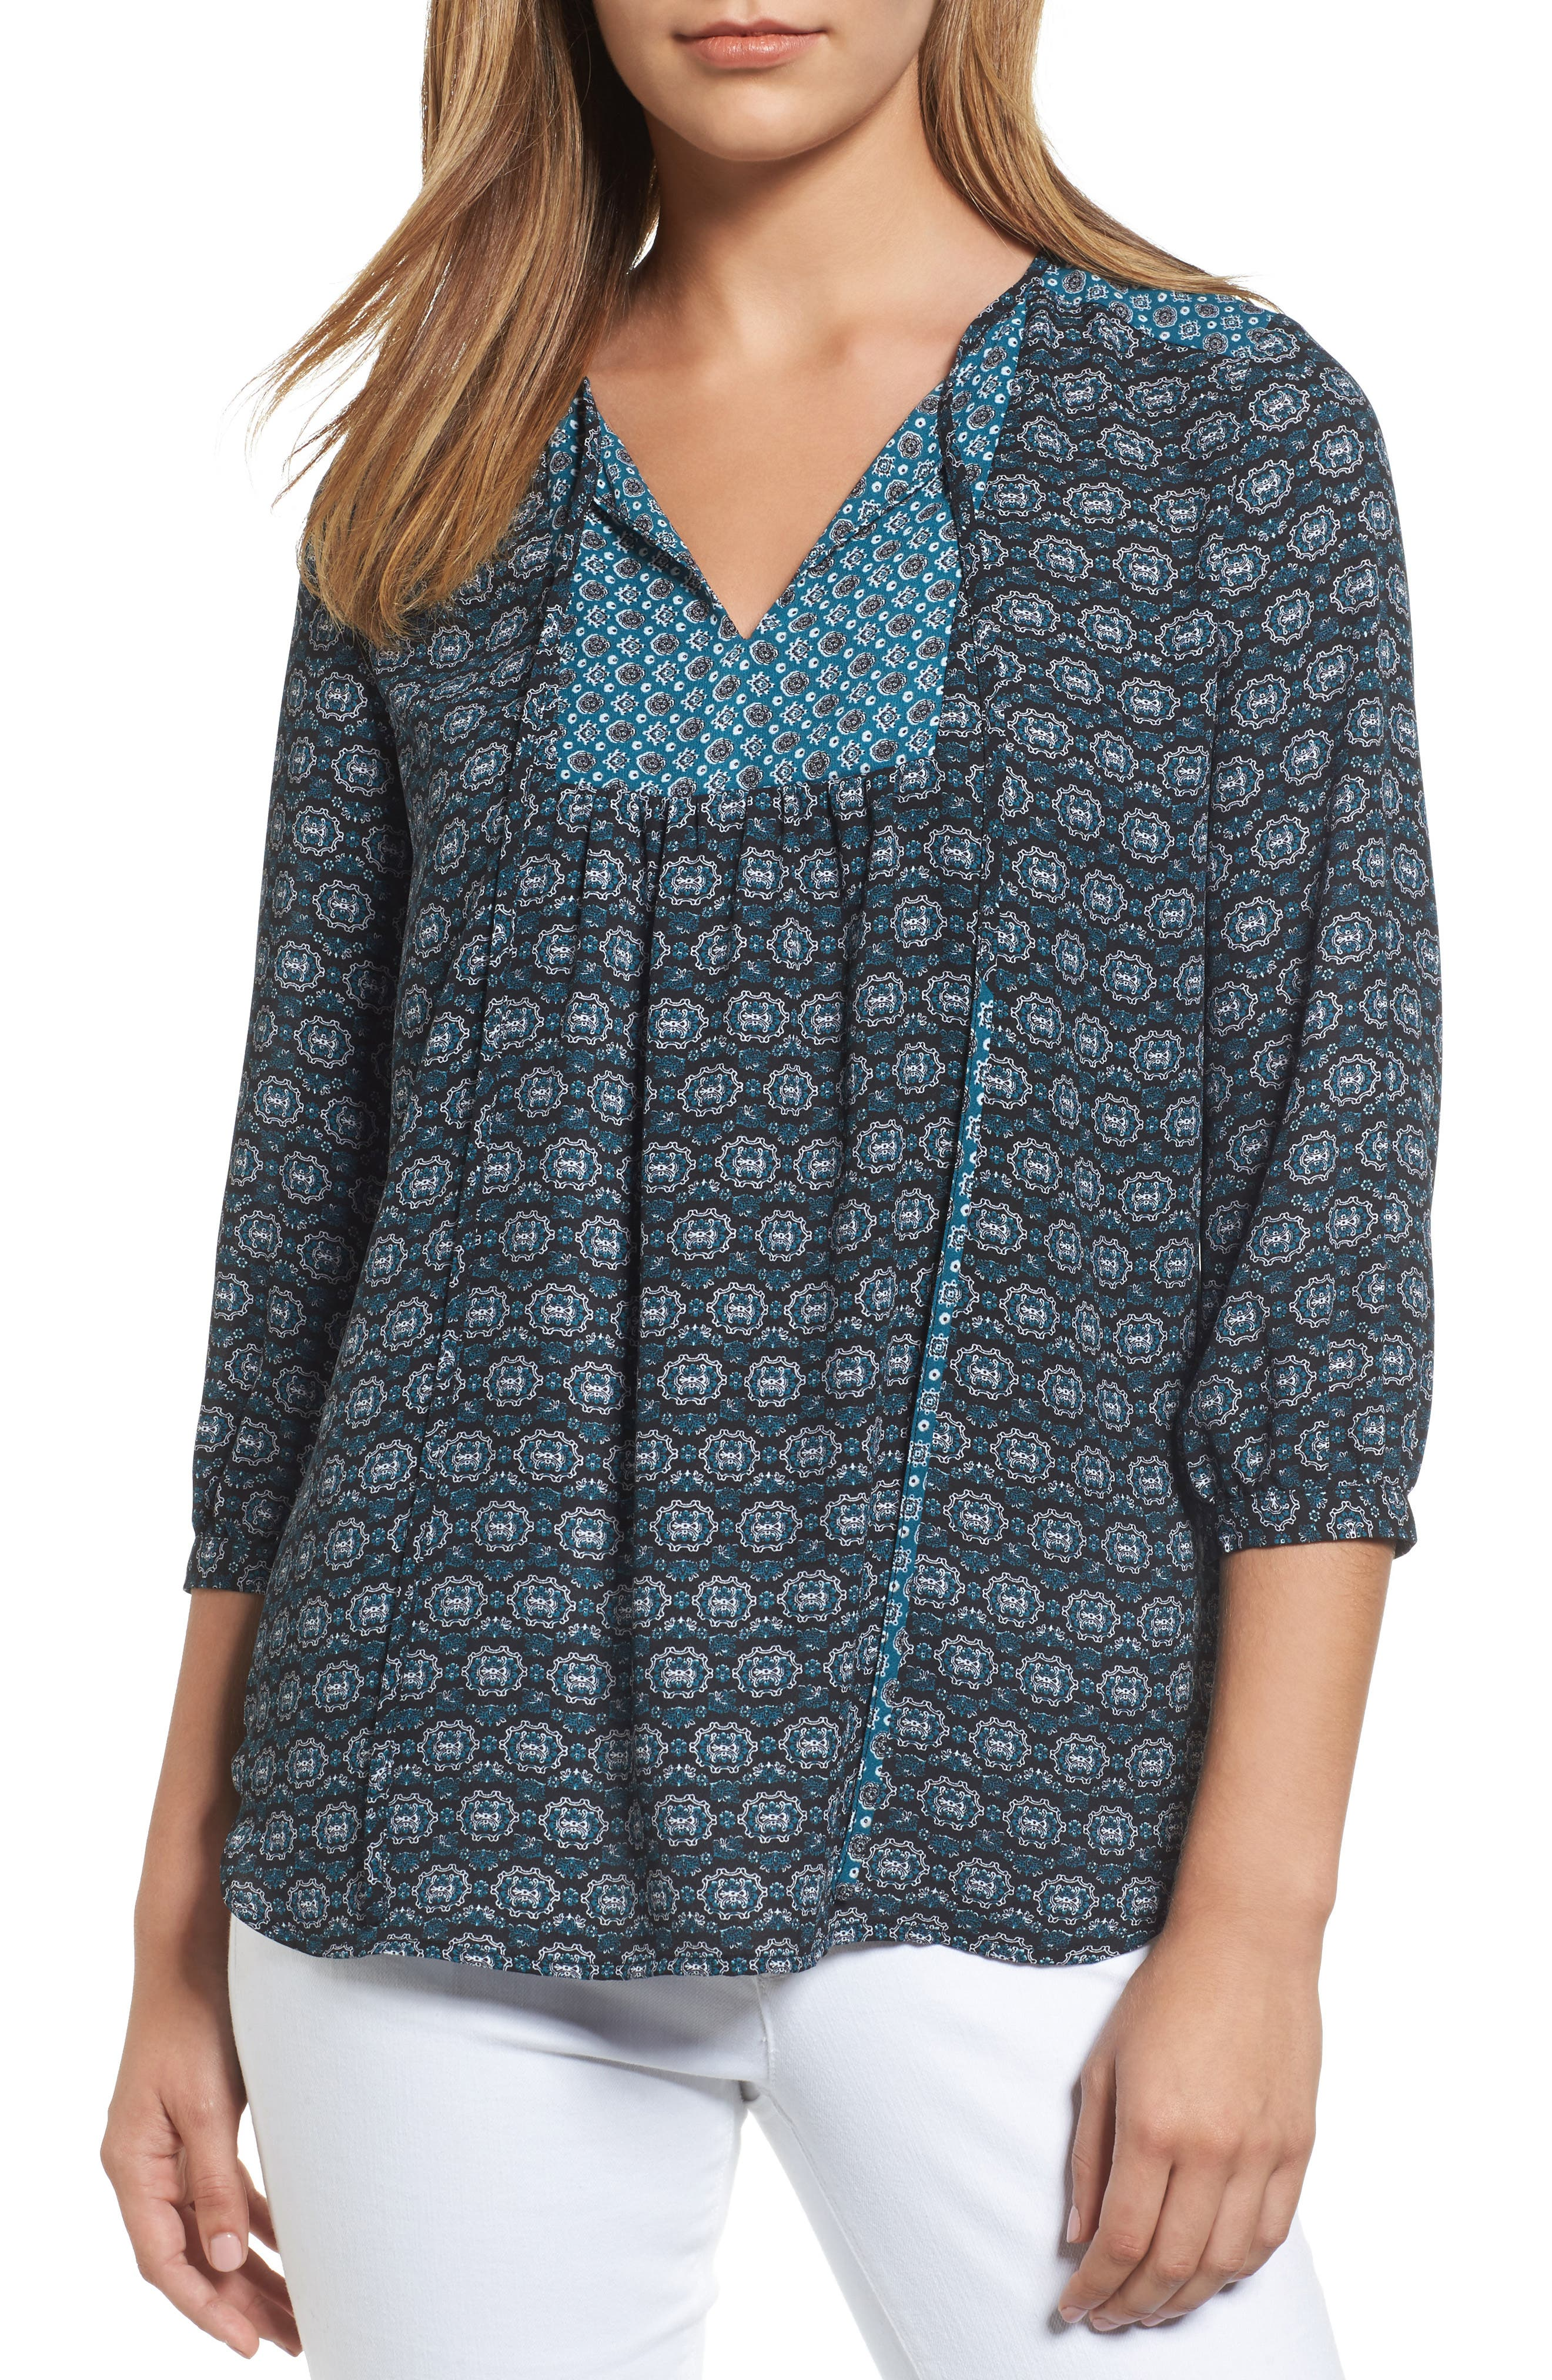 KUT from the Kloth Maci Floral Top